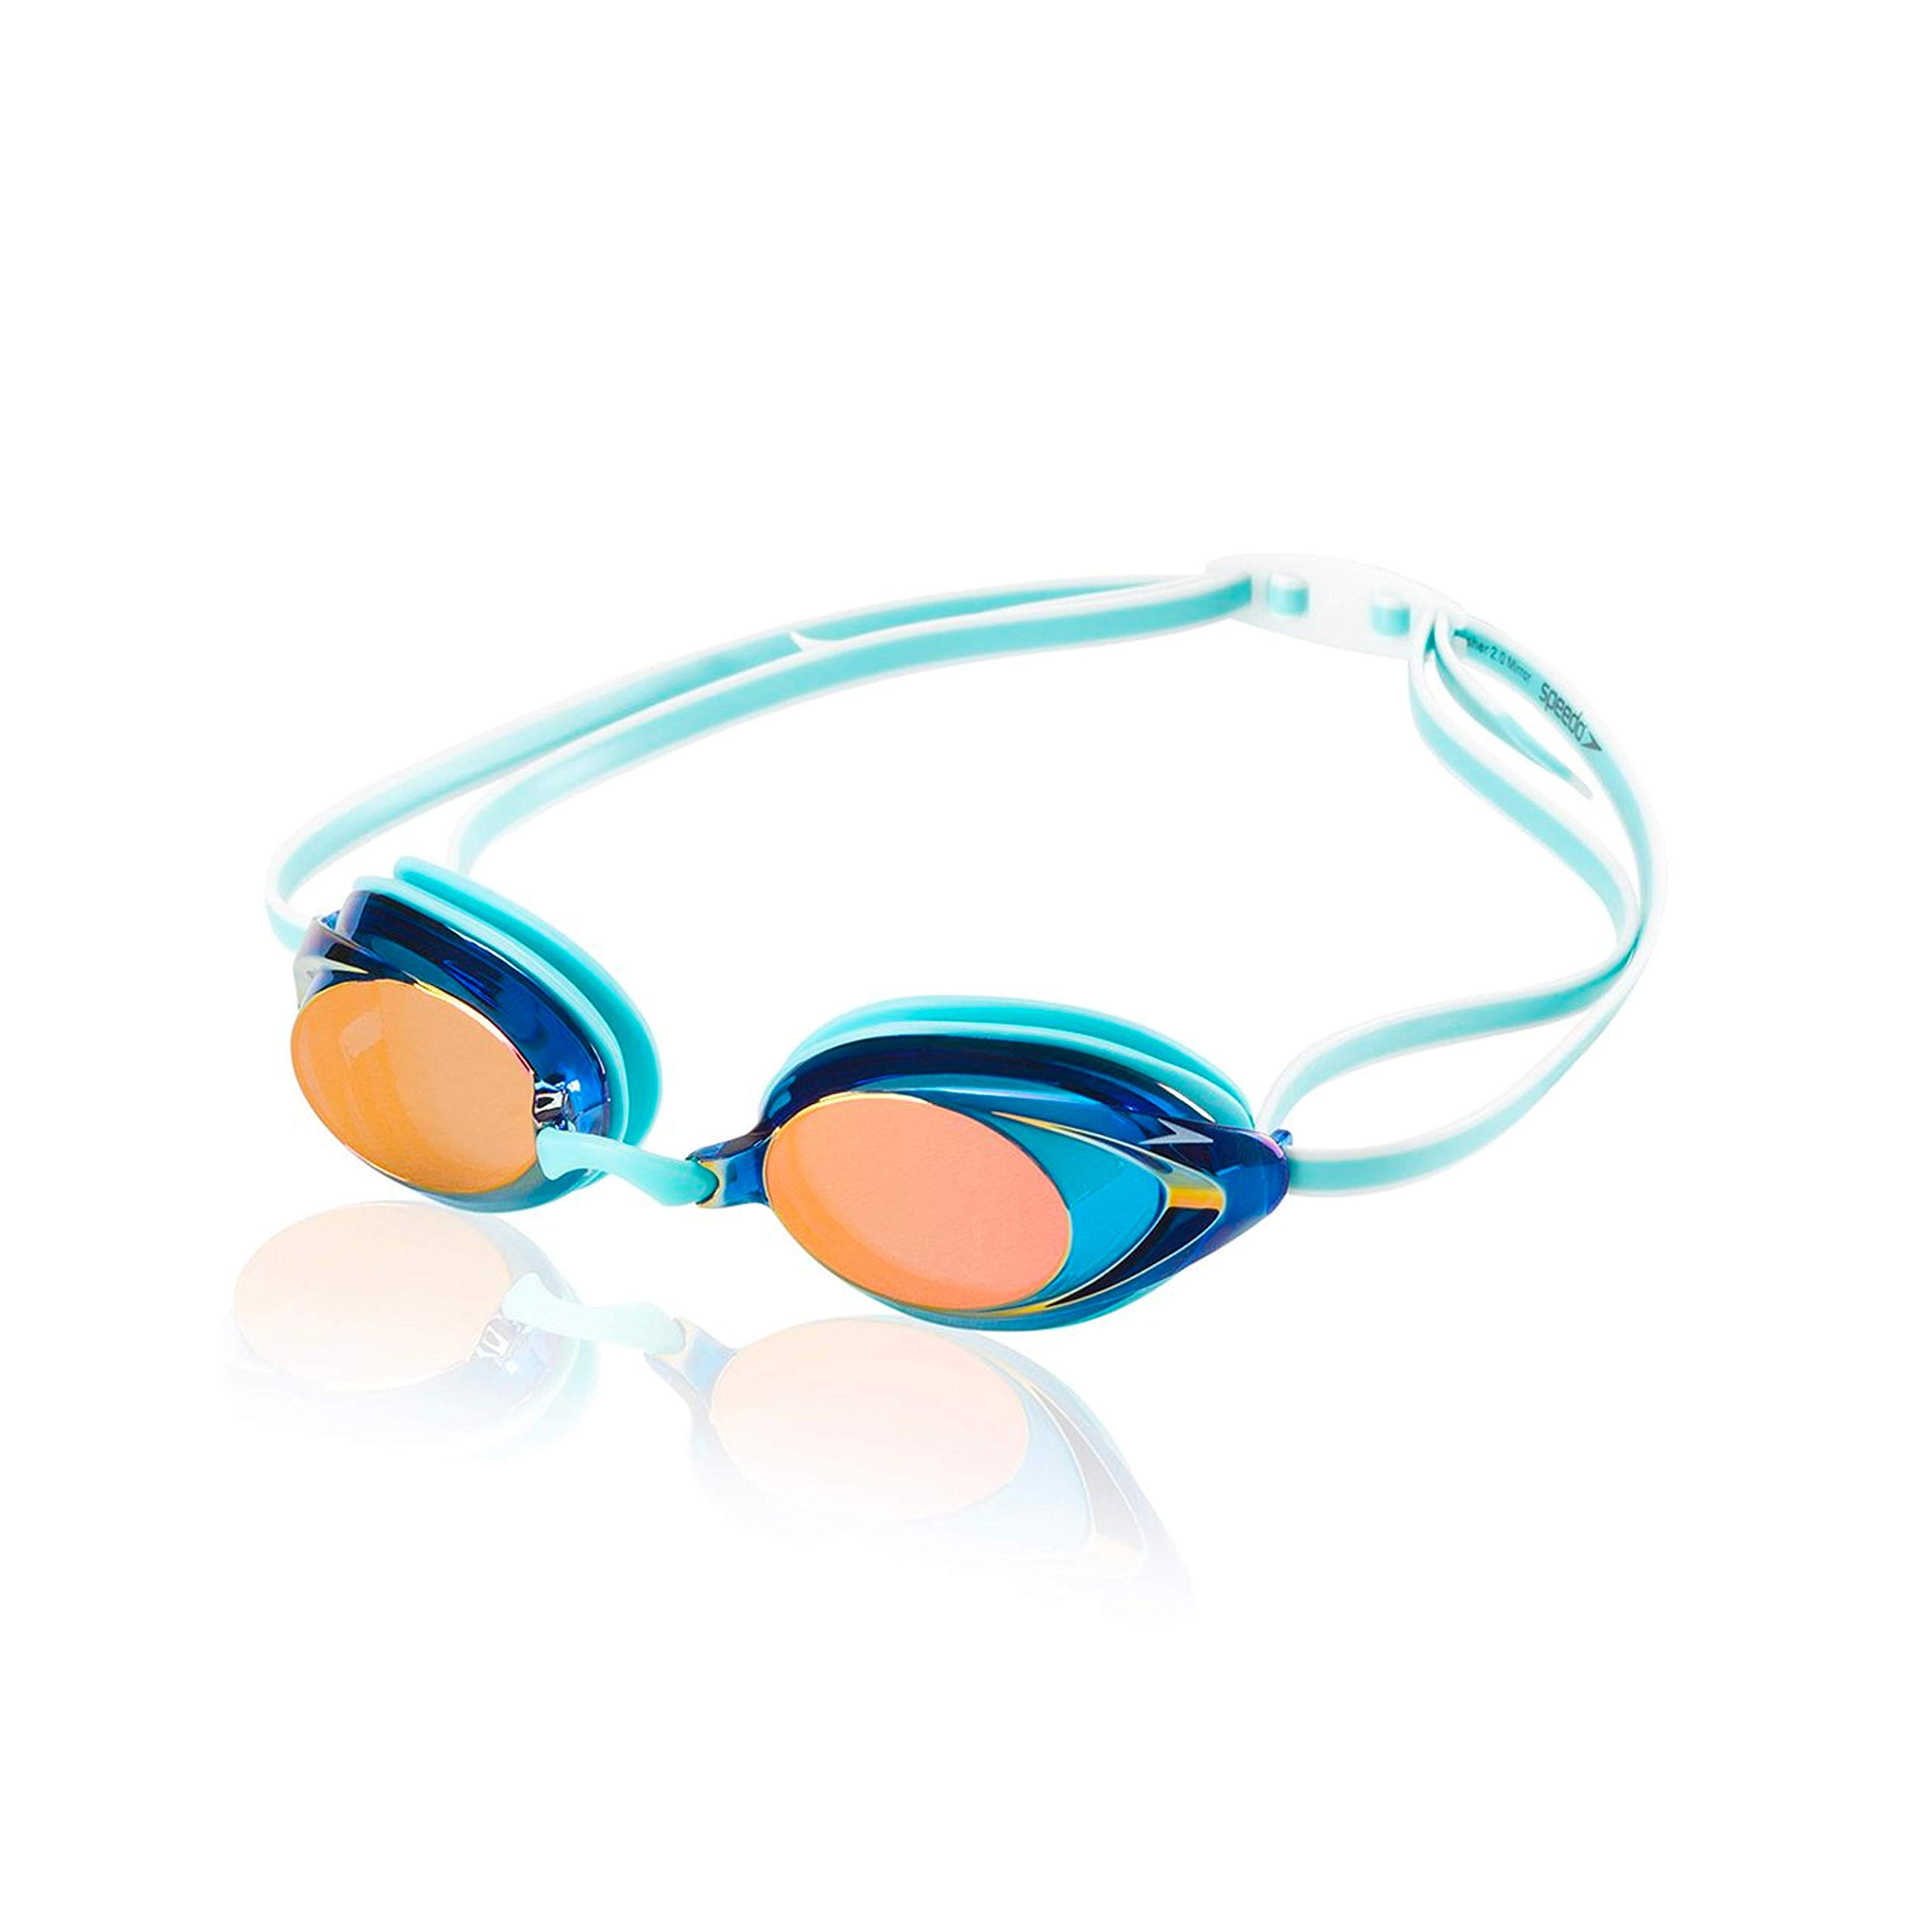 Speedo Women's Vanquisher 2.0 Mirrored Swim Goggles, Panoramic, Anti-Glare, Anti-Fog with UV Protection by Speedo